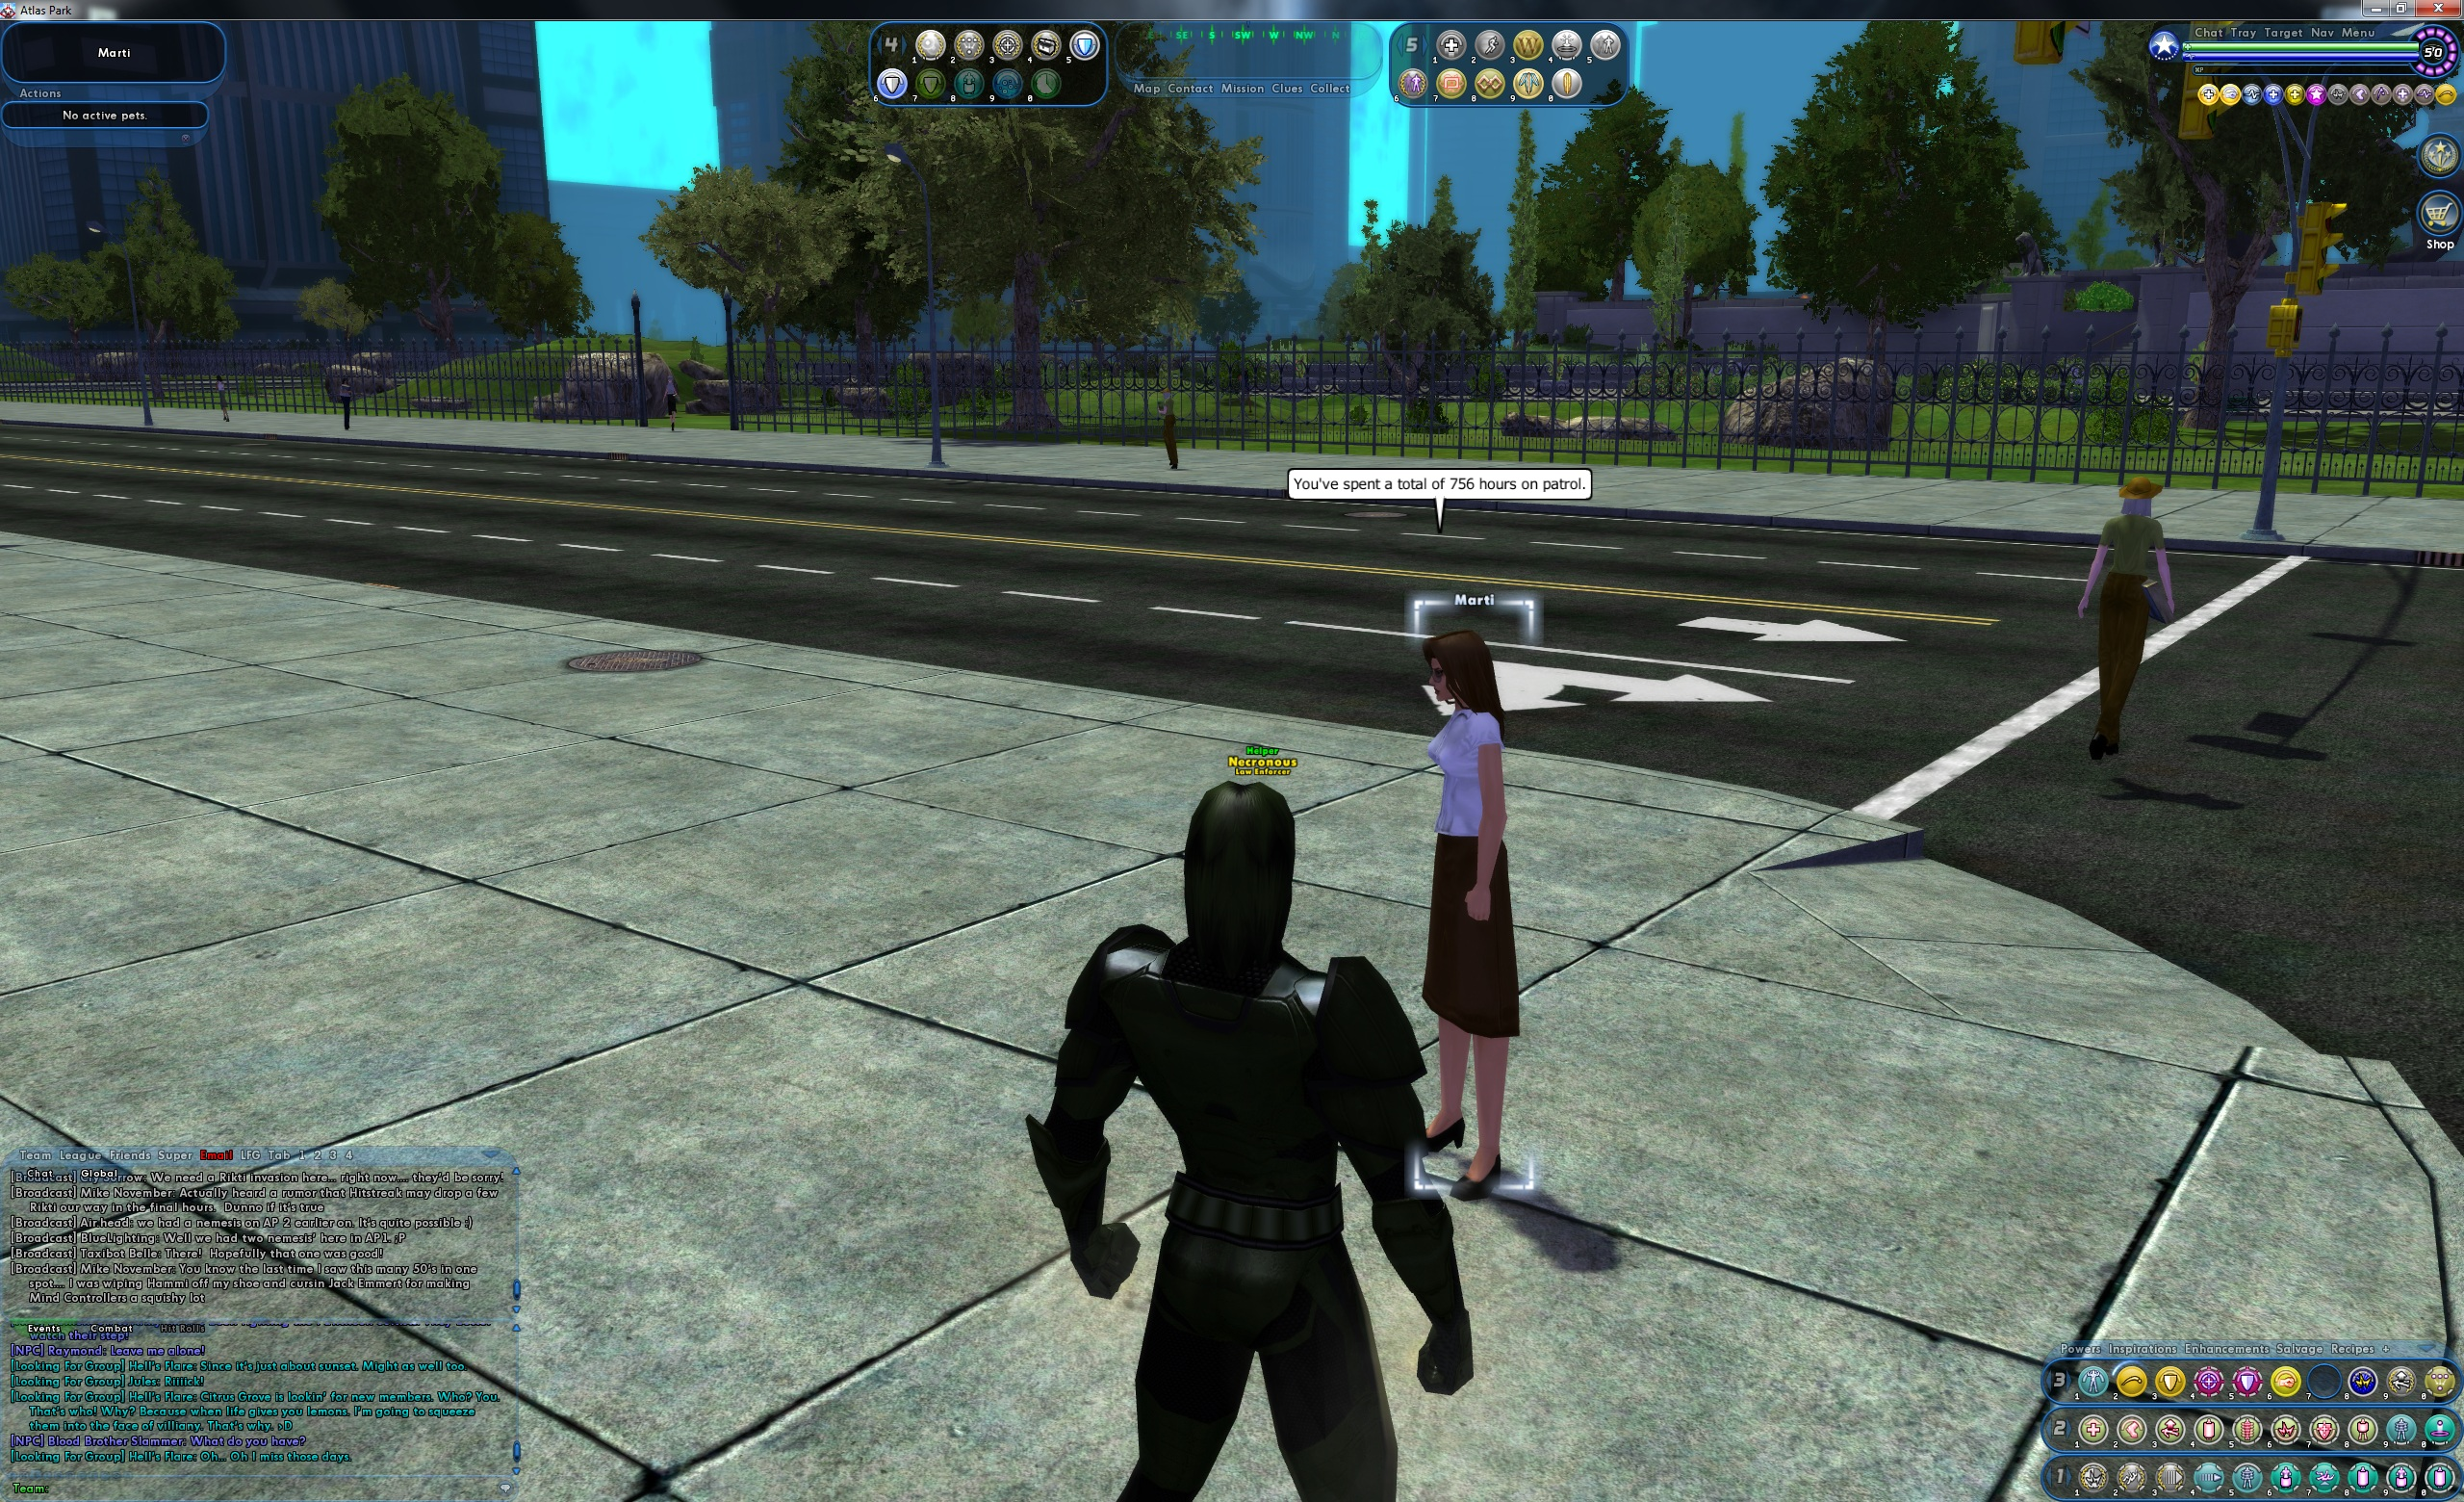 necronus games playtime posted 80-90 memoriam char main death well tonight city heroes